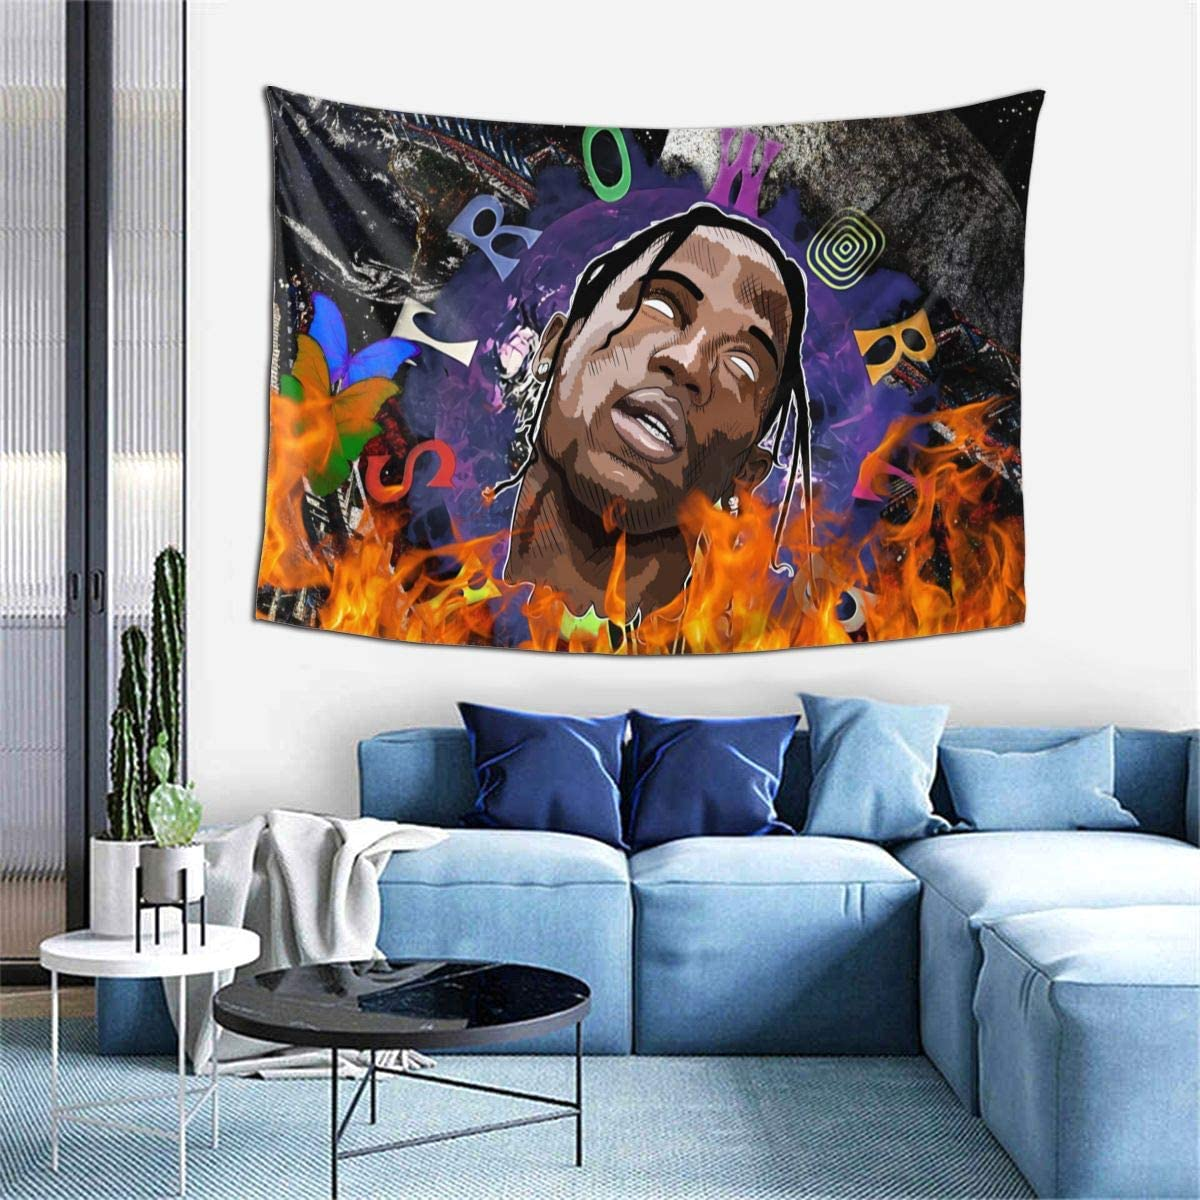 Travis-Scott Astroworld Wall Hanging,Tie-Dye Galaxy Element Tapestry with Art Nature Home Decorations Flags Poster Dorm Decor for Living Room Bedroom (40x60 Inches)